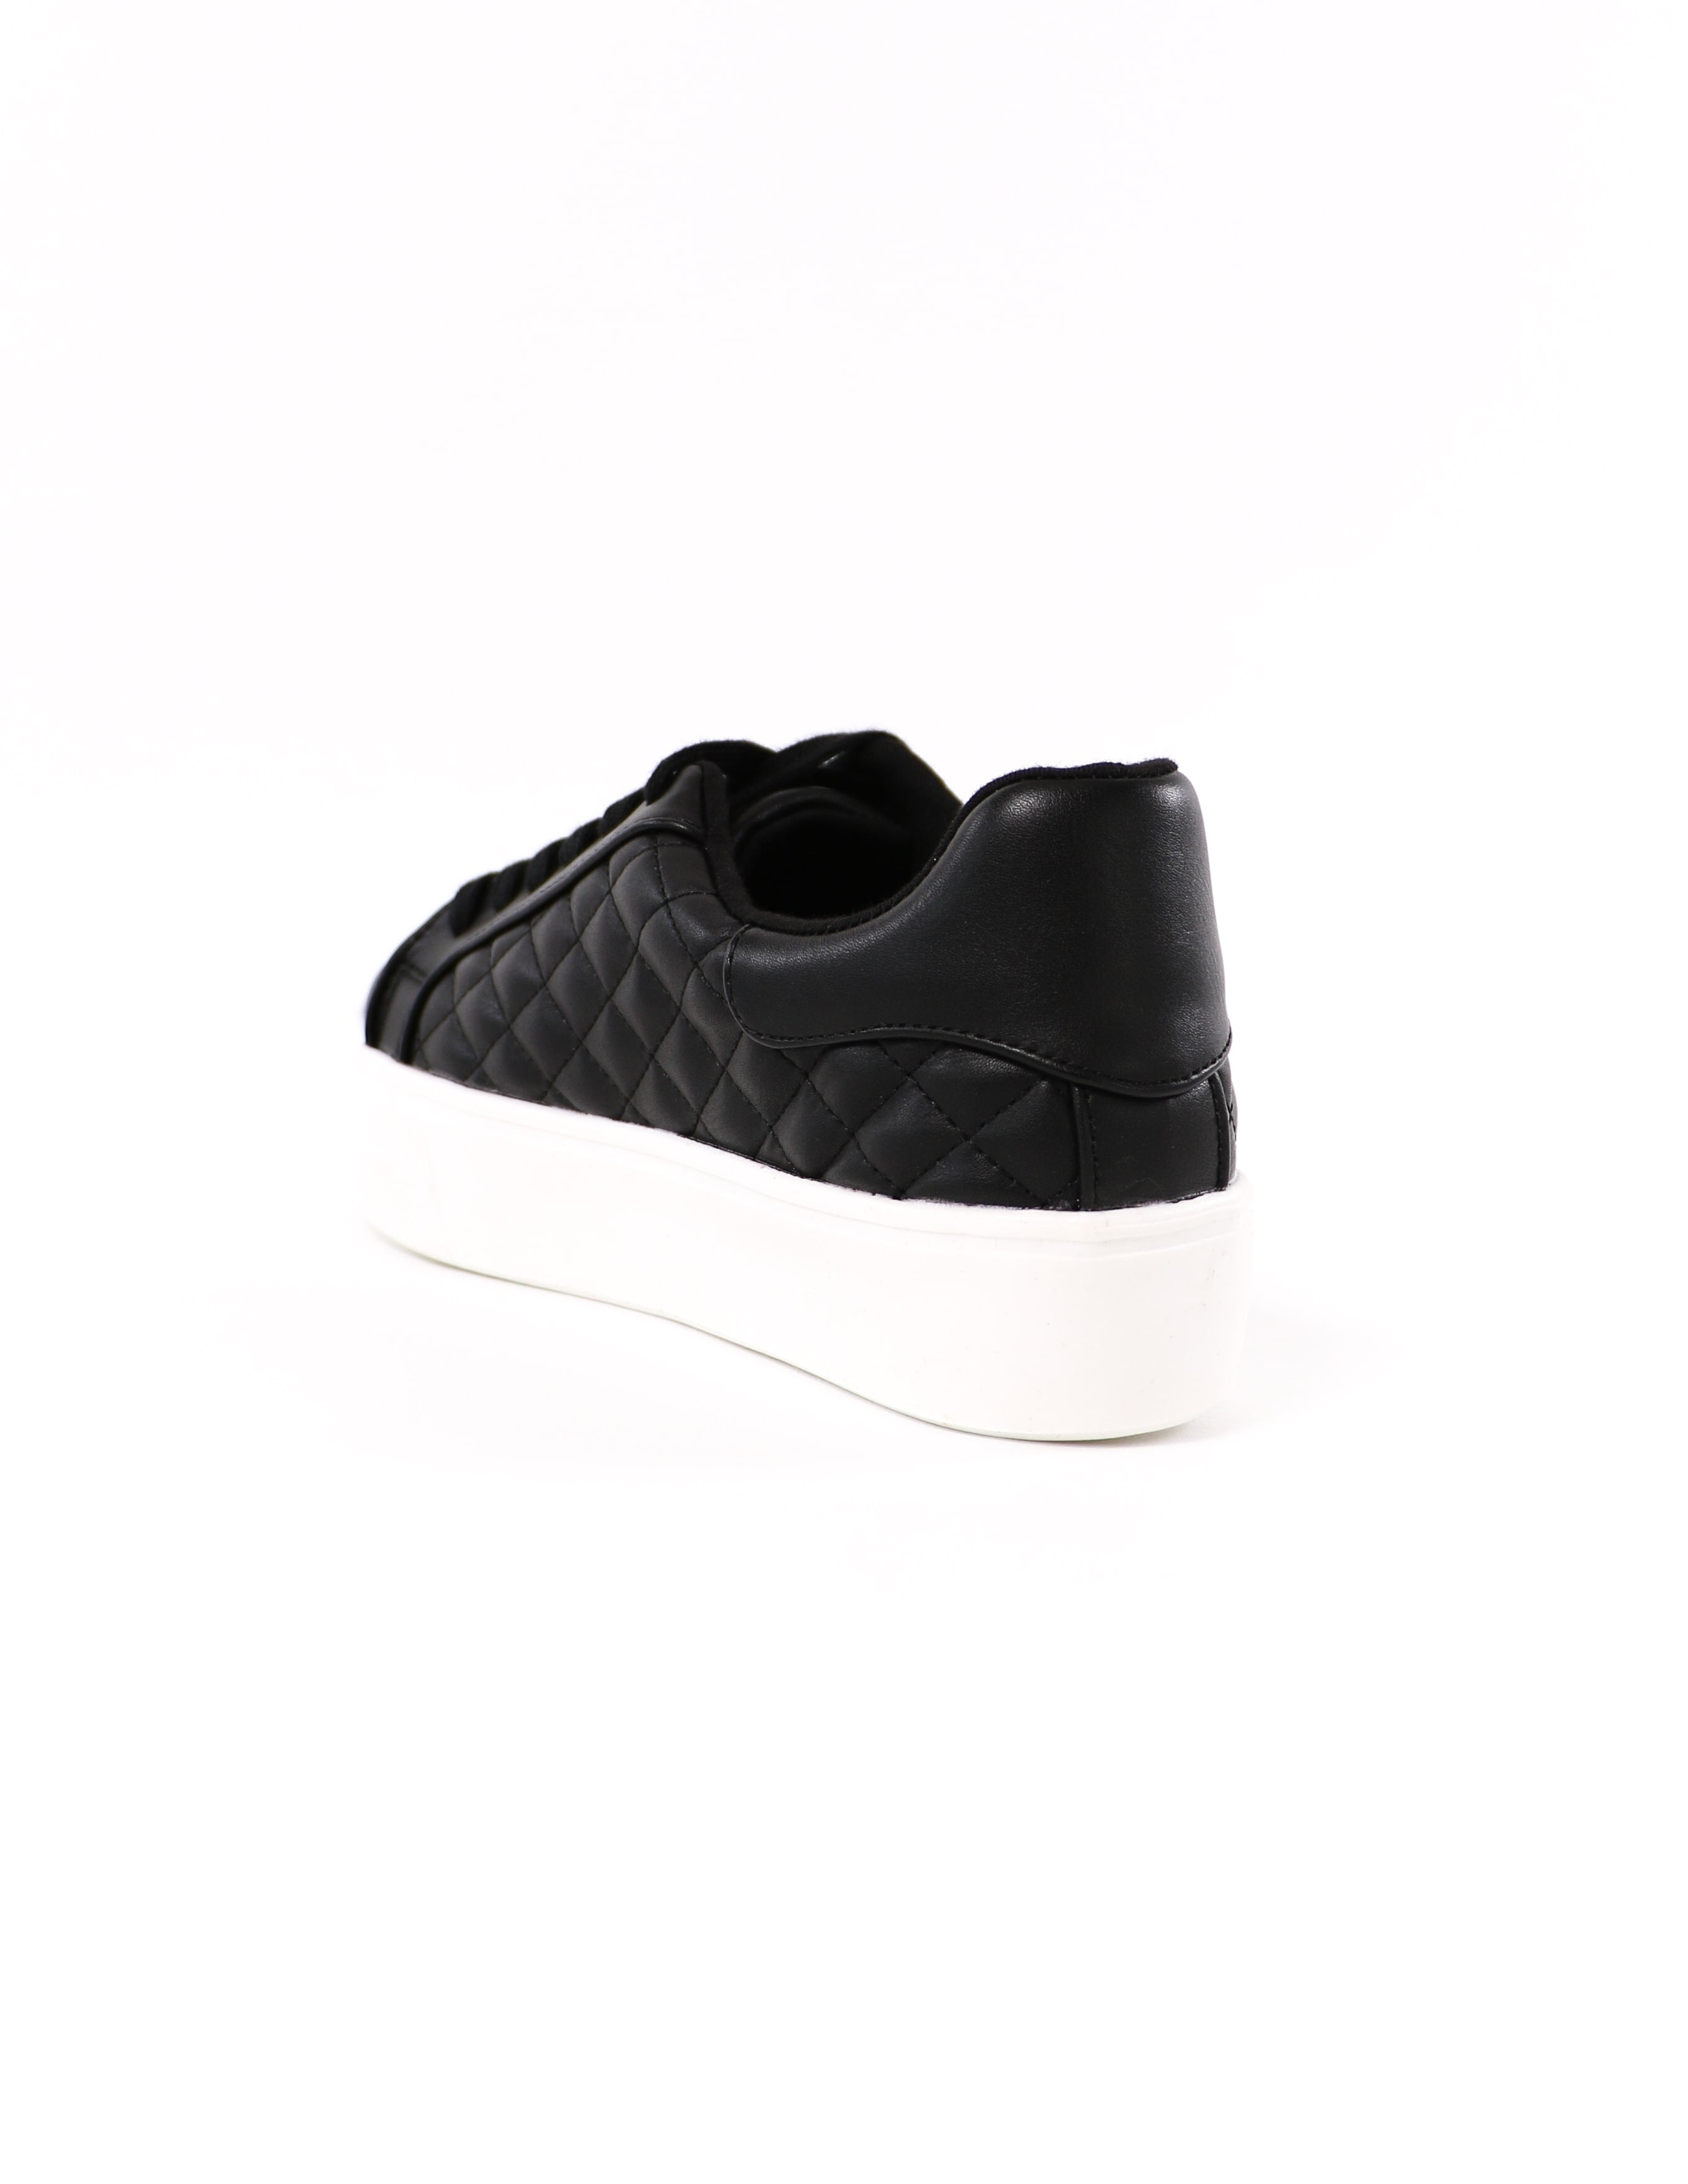 back of the quilt messin' around black sneaker with white sole - elle bleu shoes